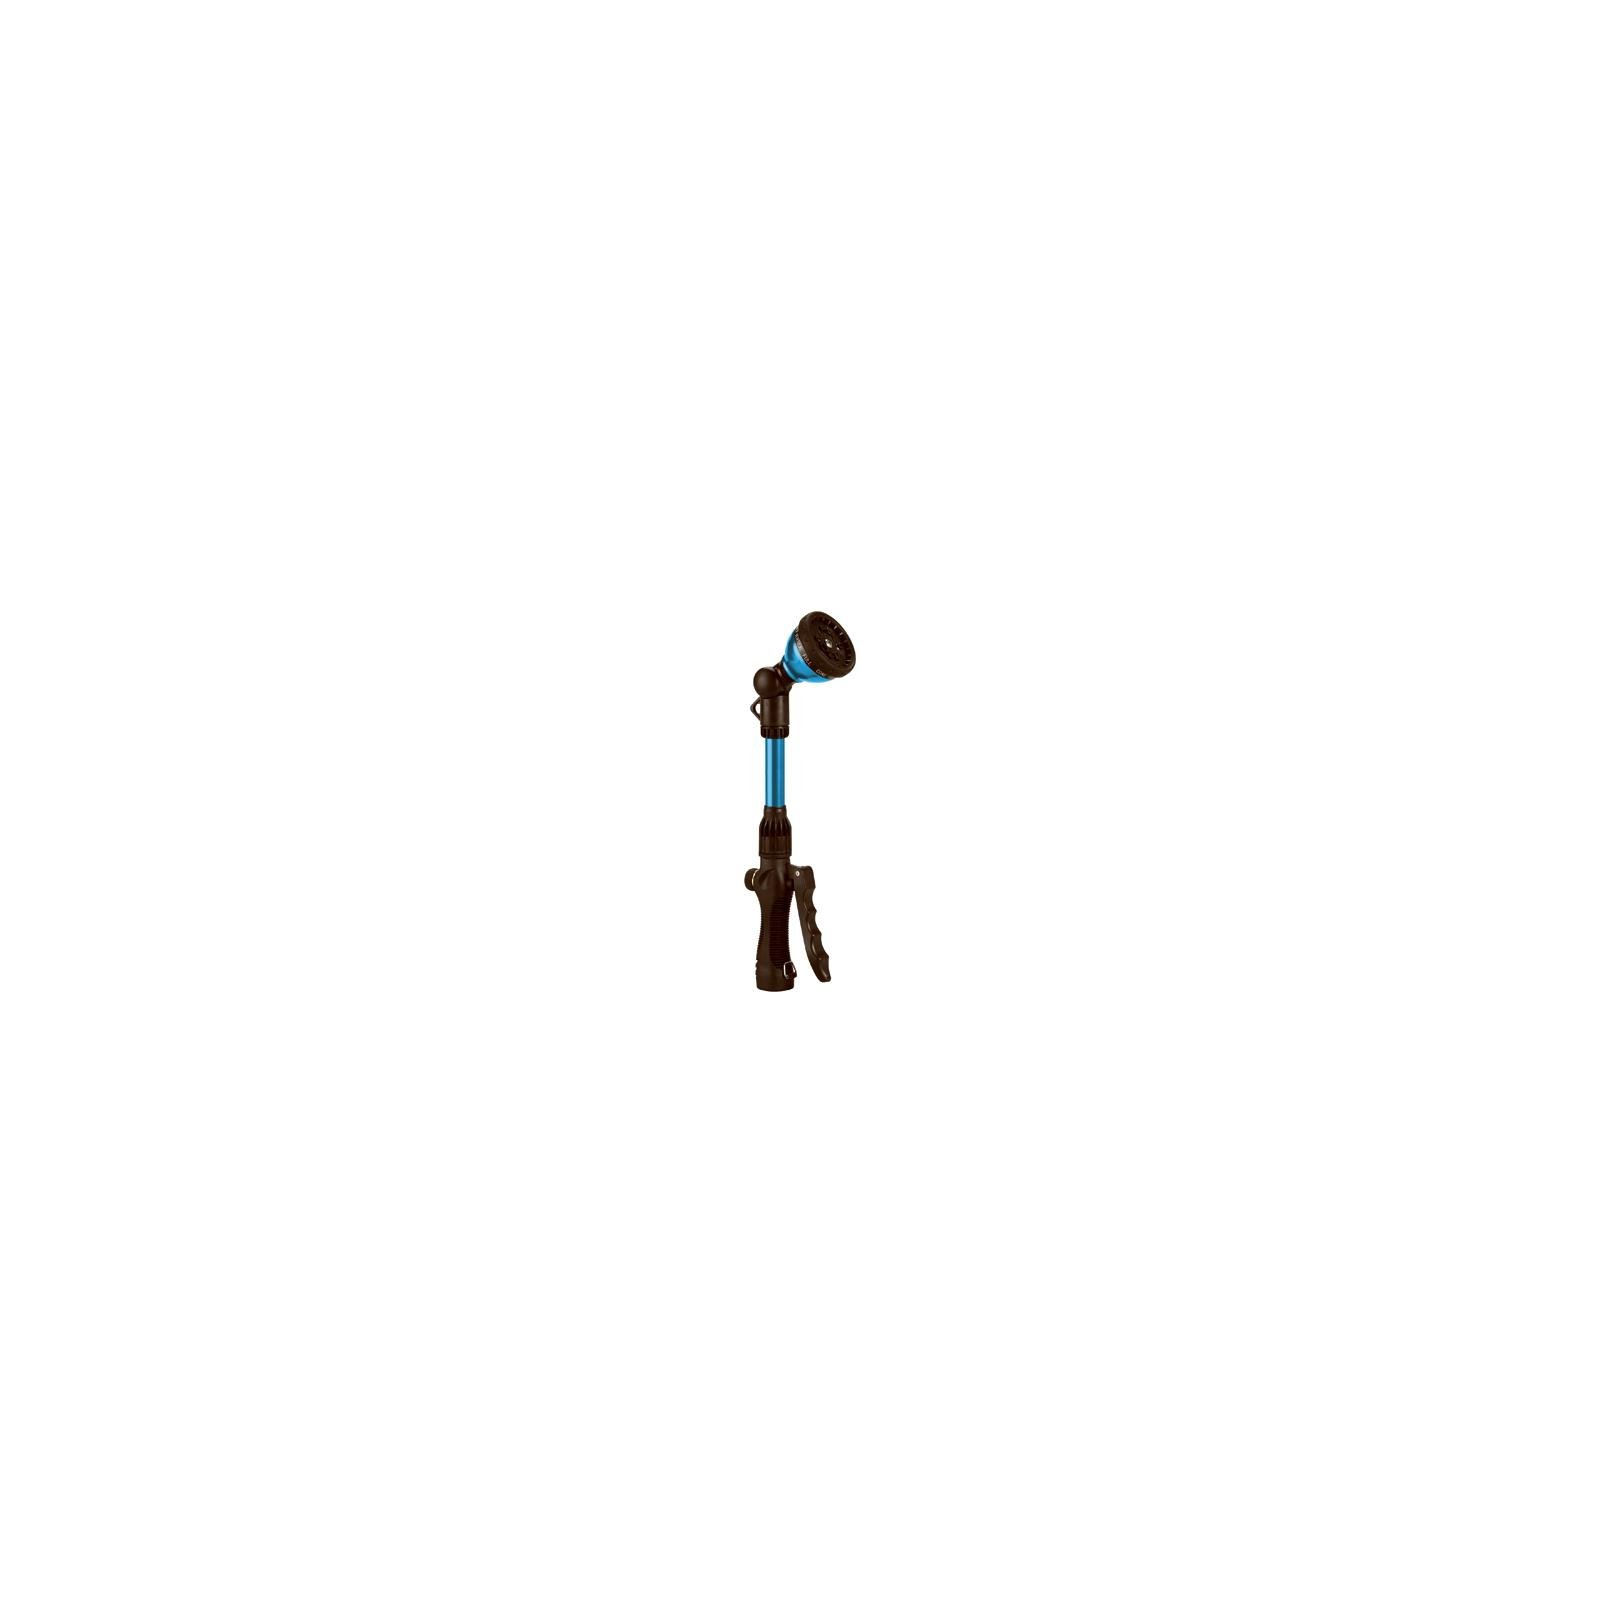 ORBIT IRRIGATION PRODUCTS, INC. Orbit Irrigation Products 56287 Water Wand, 16-In. - Quantity 6